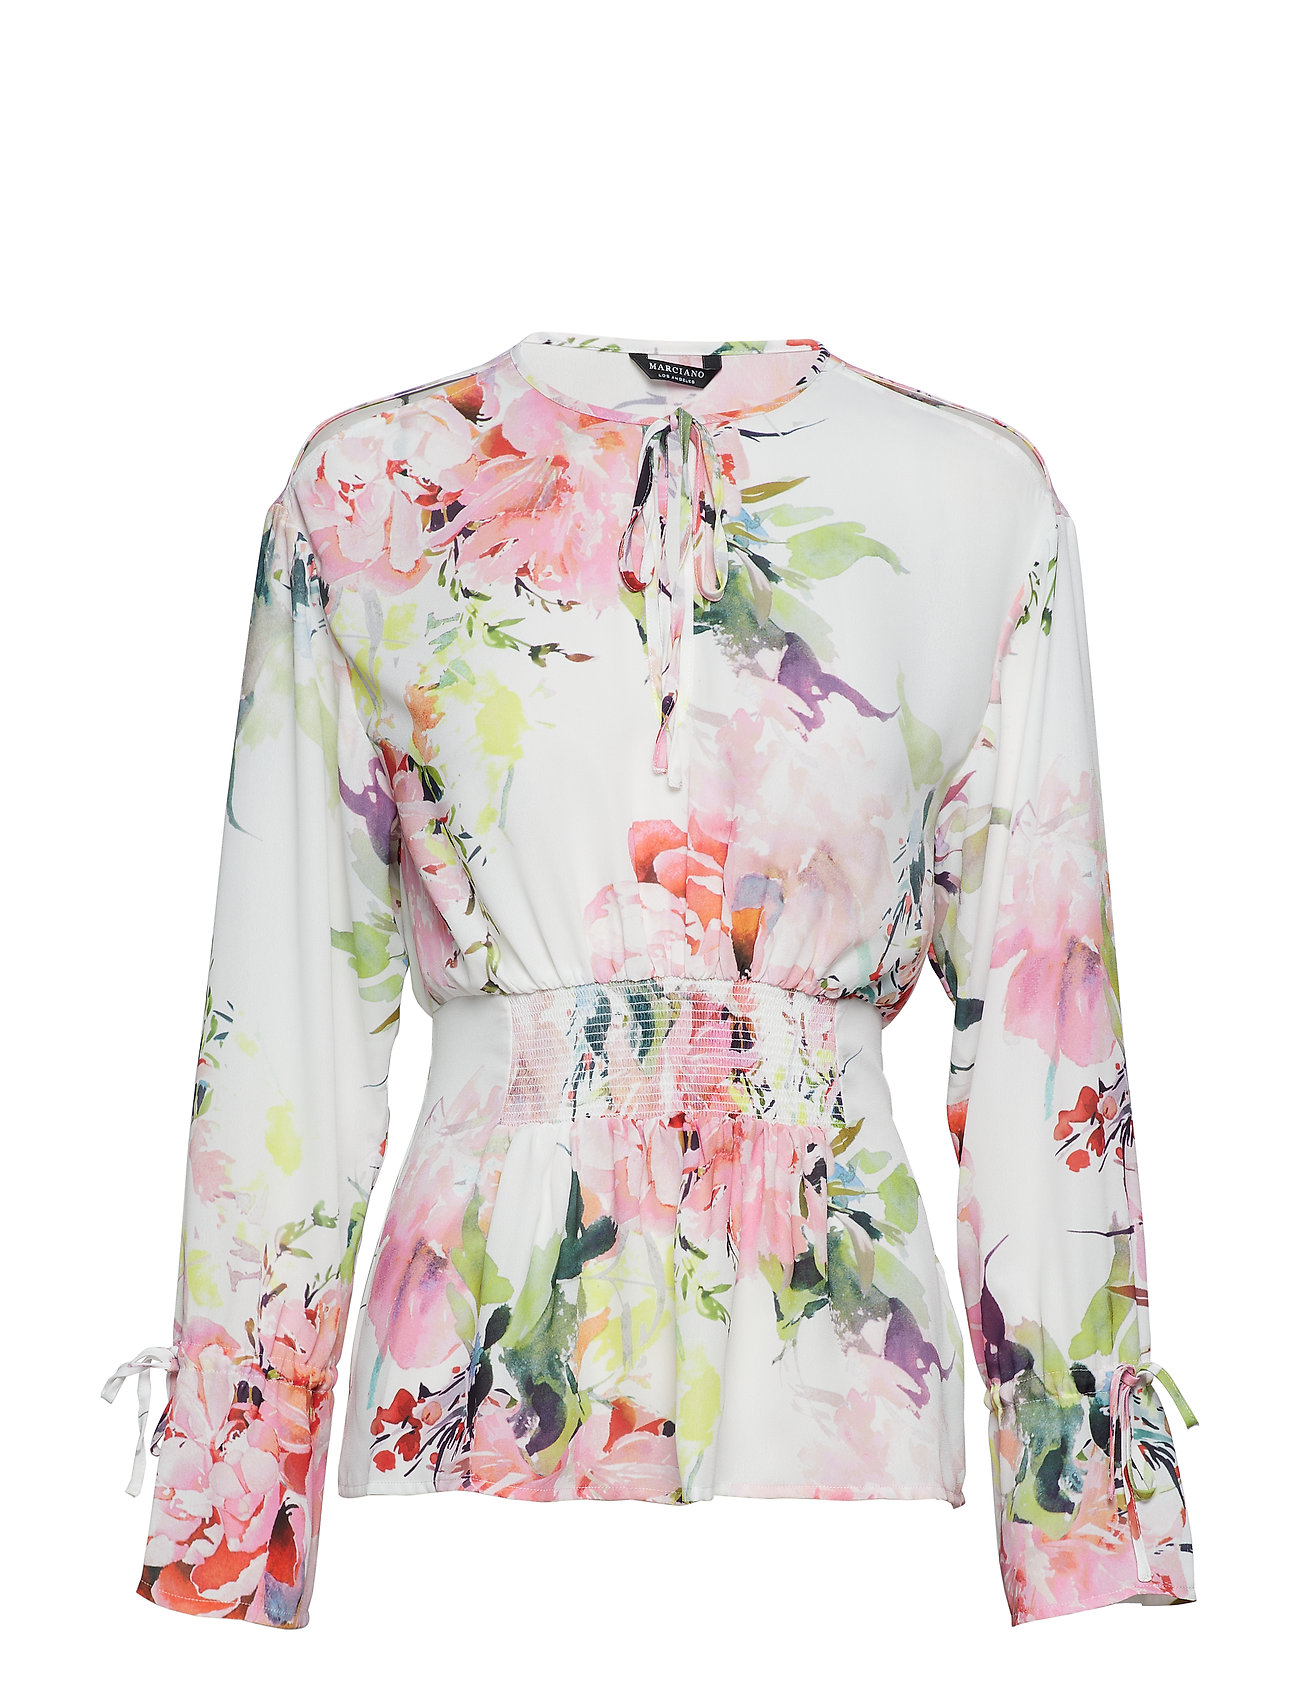 Marciano by GUESS PETAL PERFECTION TOP - PETAL PERFECTION